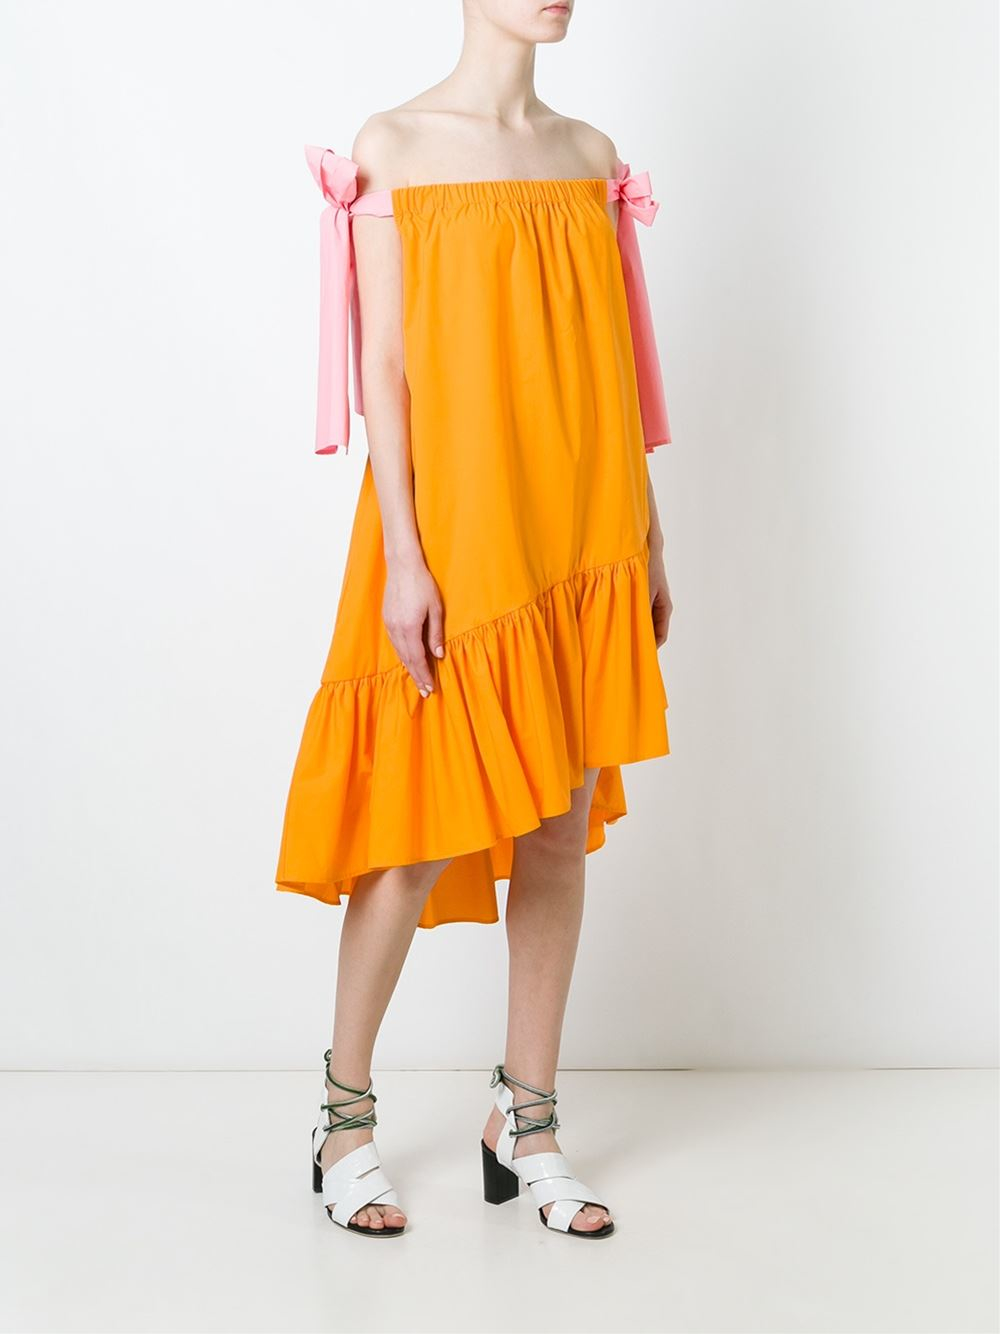 off-the-shoulder broderie anglaise dress - Yellow & Orange Msgm ZZgZvD